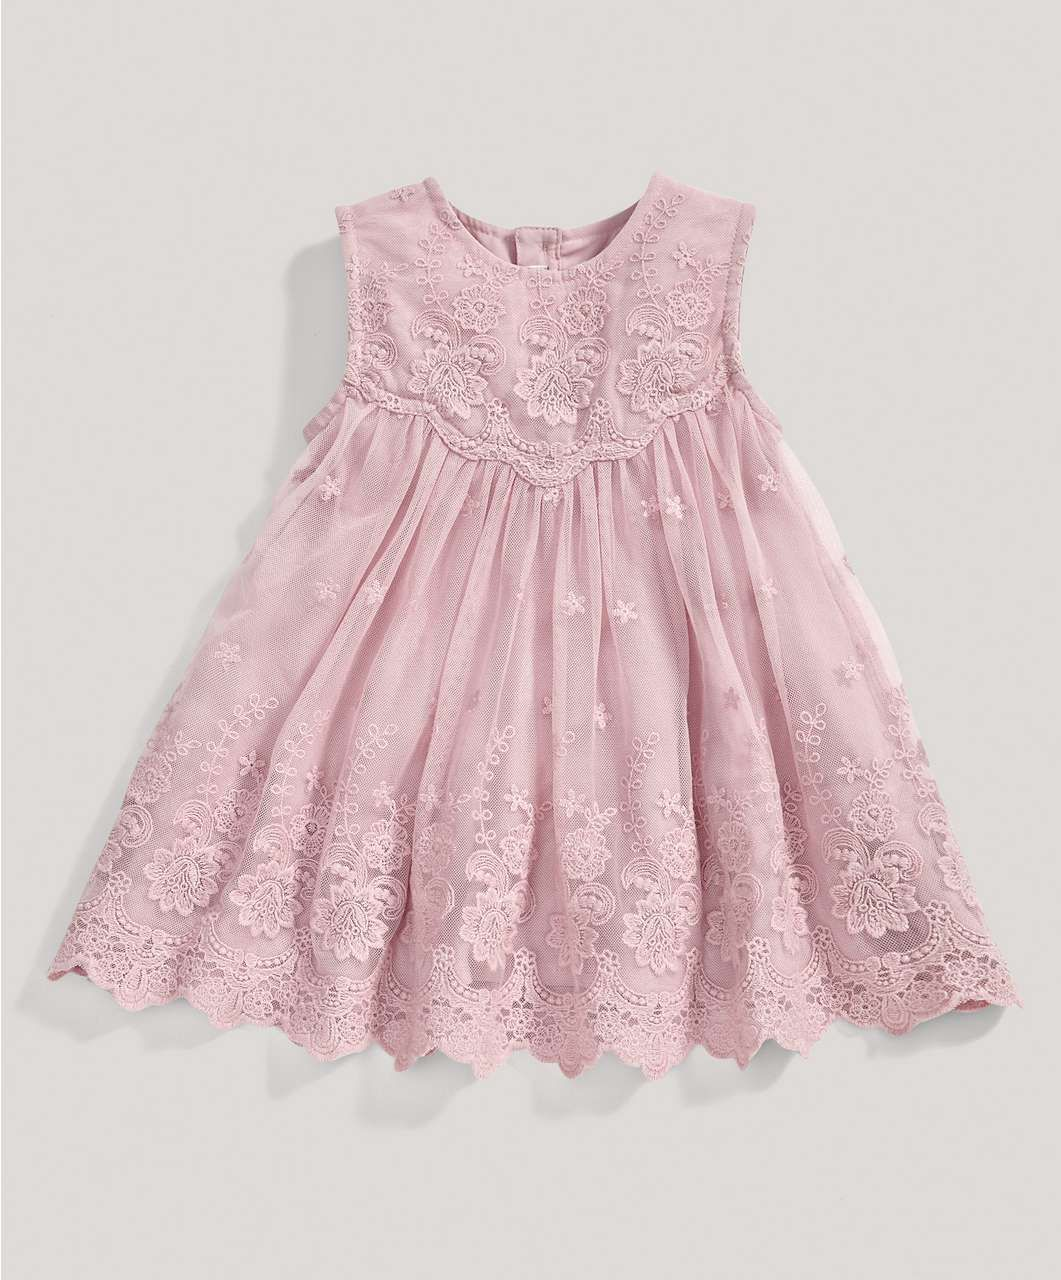 Girls Pink Lace Dress Special Occasionchristening Mamas